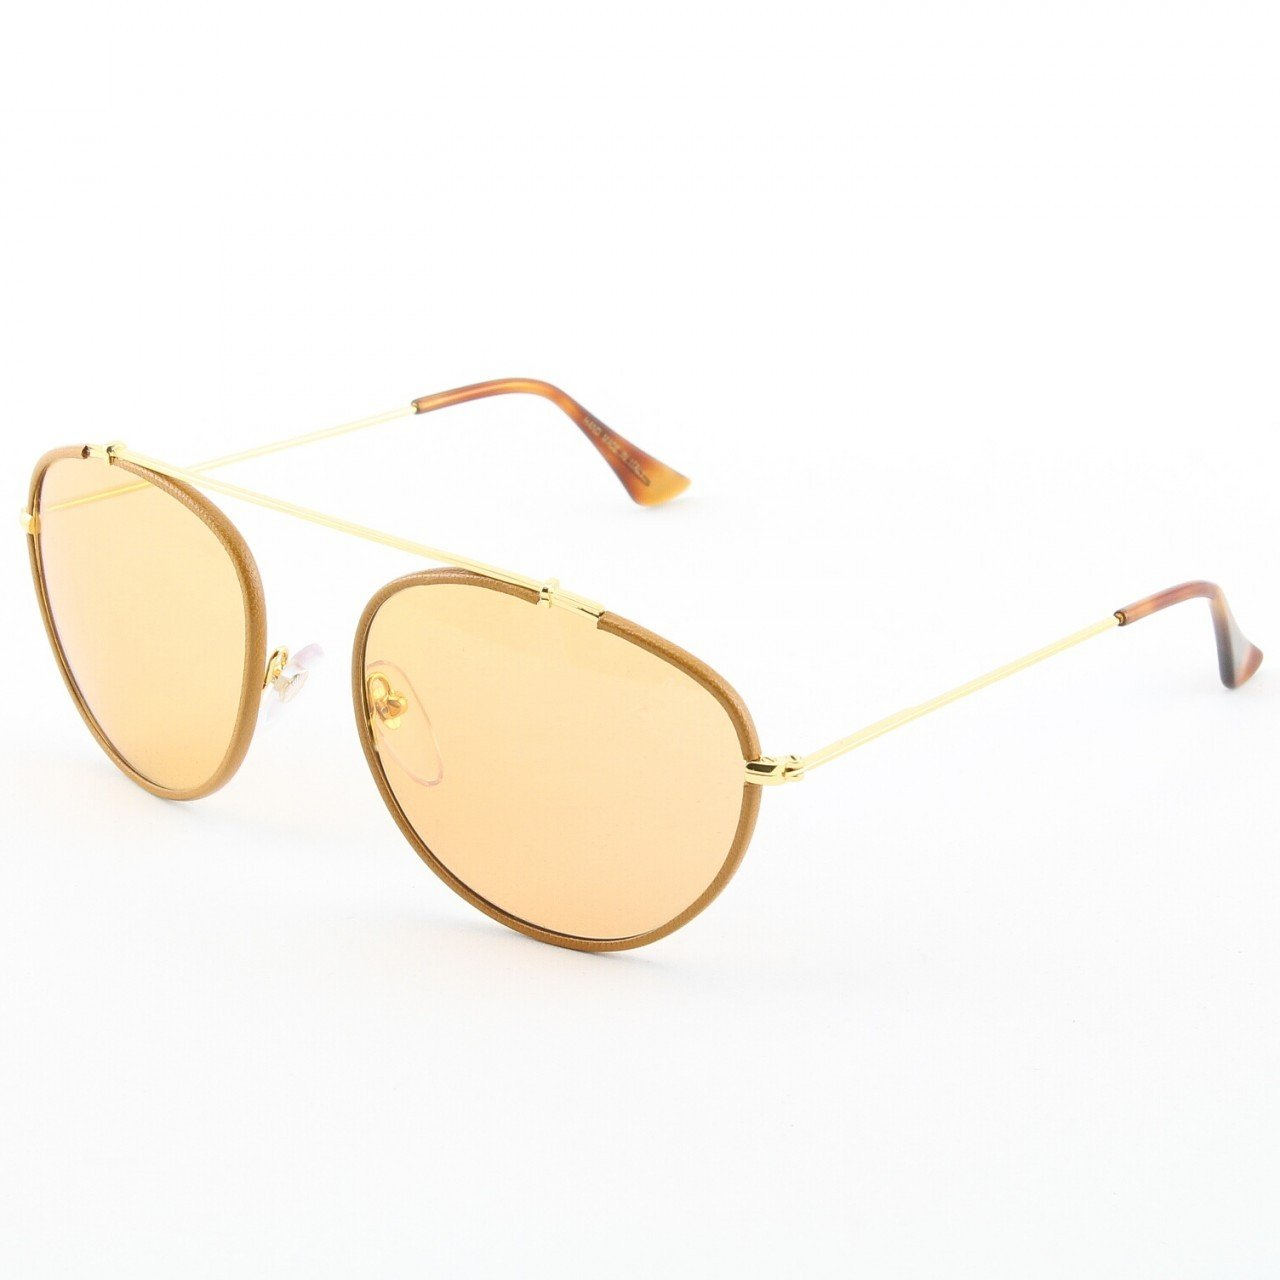 Super Leon 541/1M Sunglasse Gold Beige Leather with Amber Zeiss Lenses by RETROSUPERFUTURE